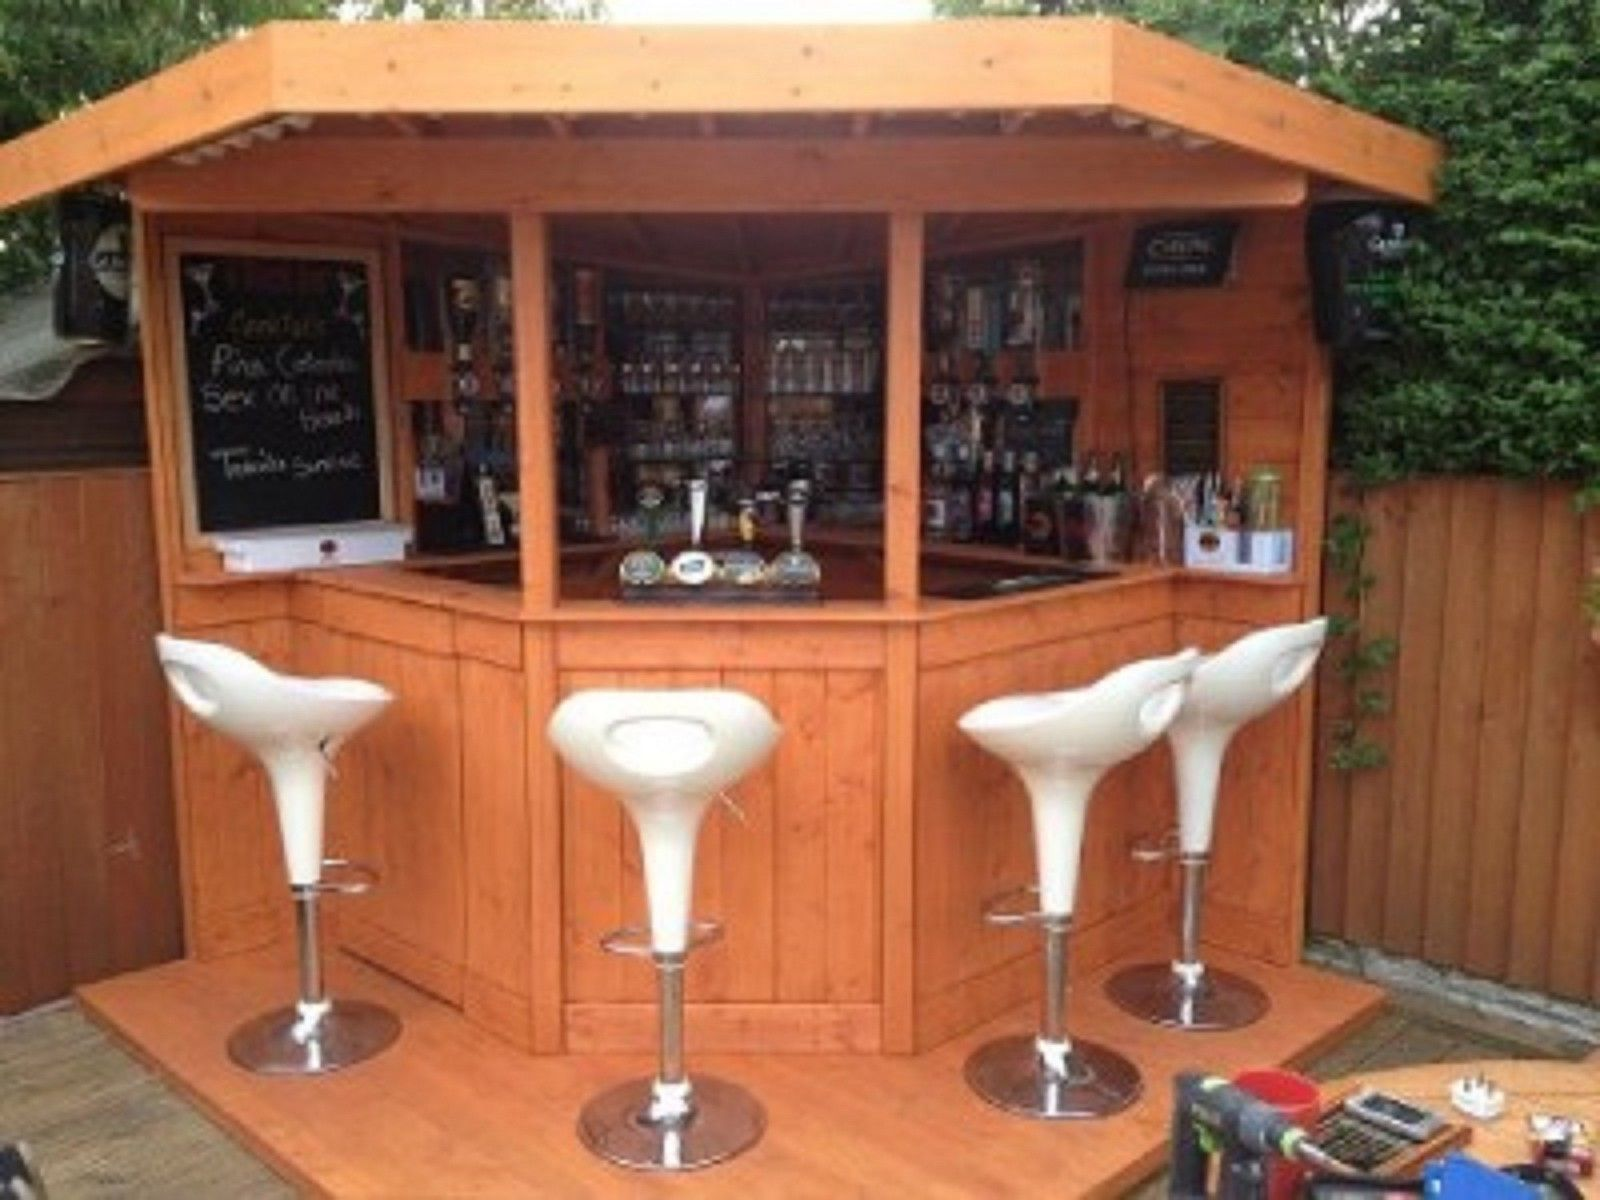 Bbq Huts Log Cabins Saunas Hot Tubs And Camping Pods Are Becoming Popular Additions To Many Homes And Gardens Due To Garden Bar Corner Bar Garden Bar Shed